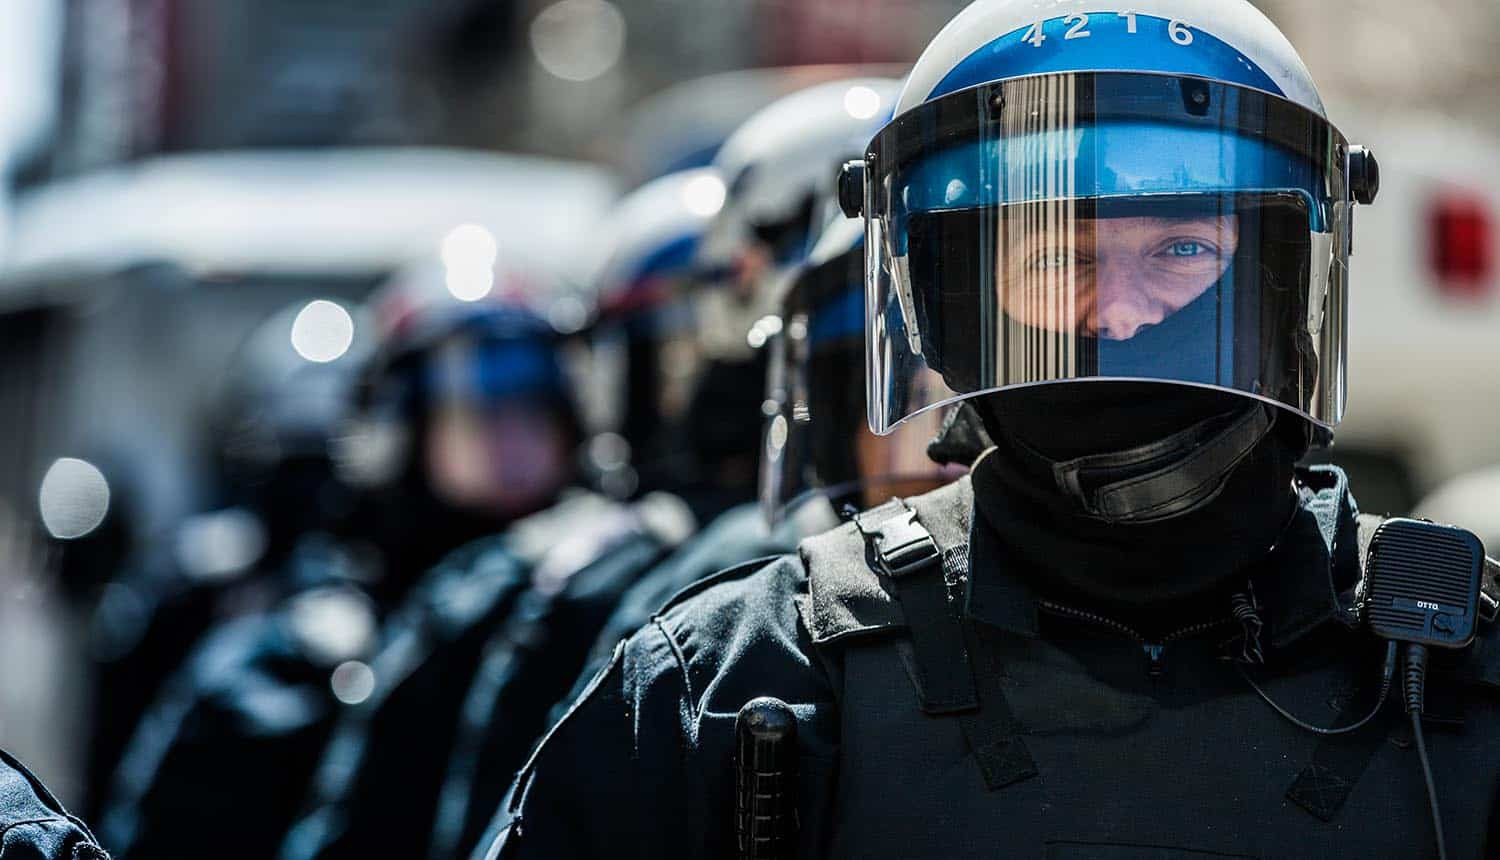 Image of police in riot gear representing government surveillance and the impact on security and privacy